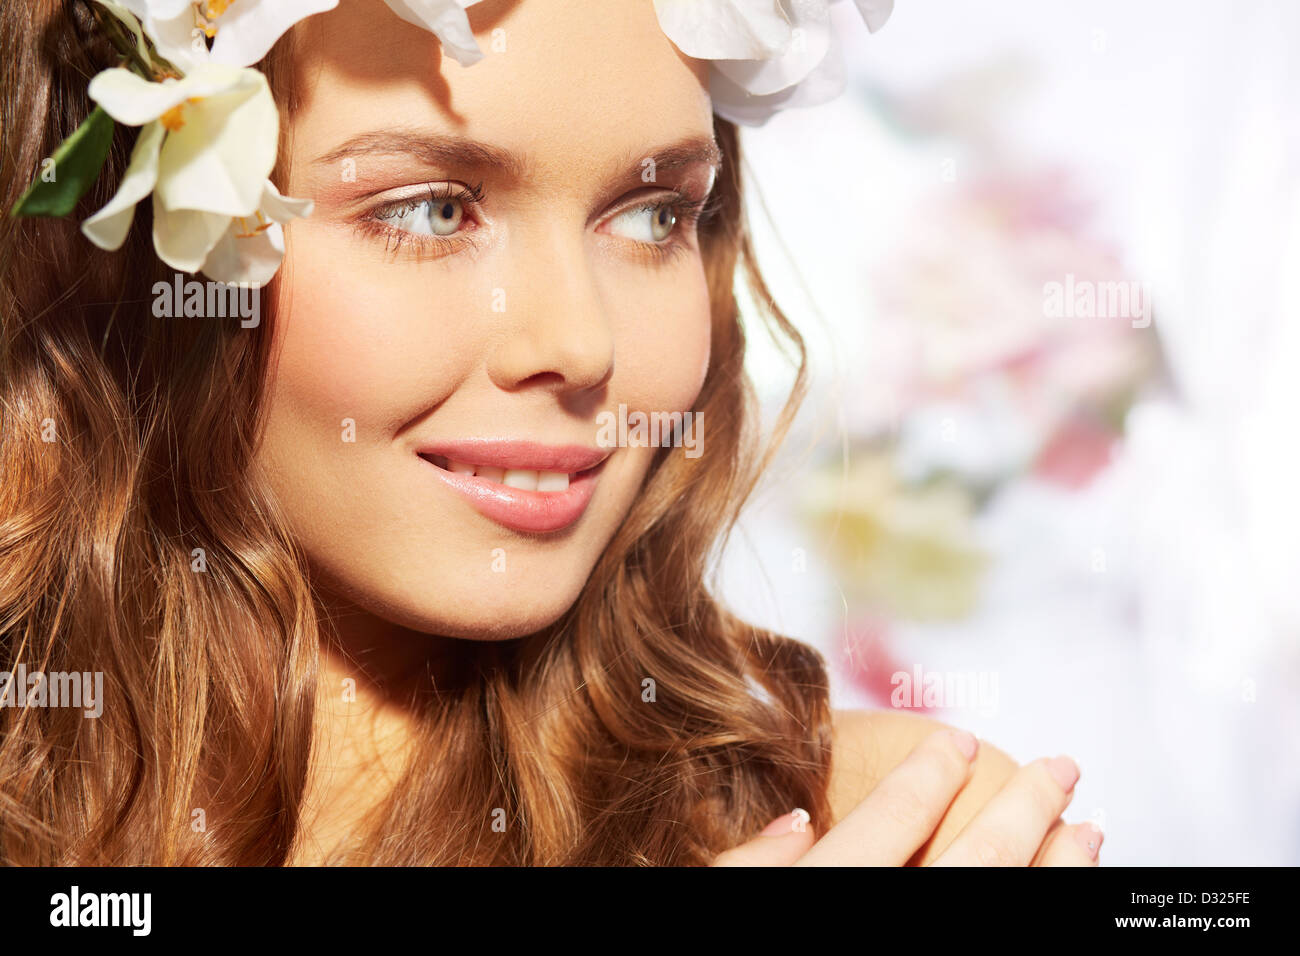 Close-up image of a girl with fair complexion and natural make-up - Stock Image